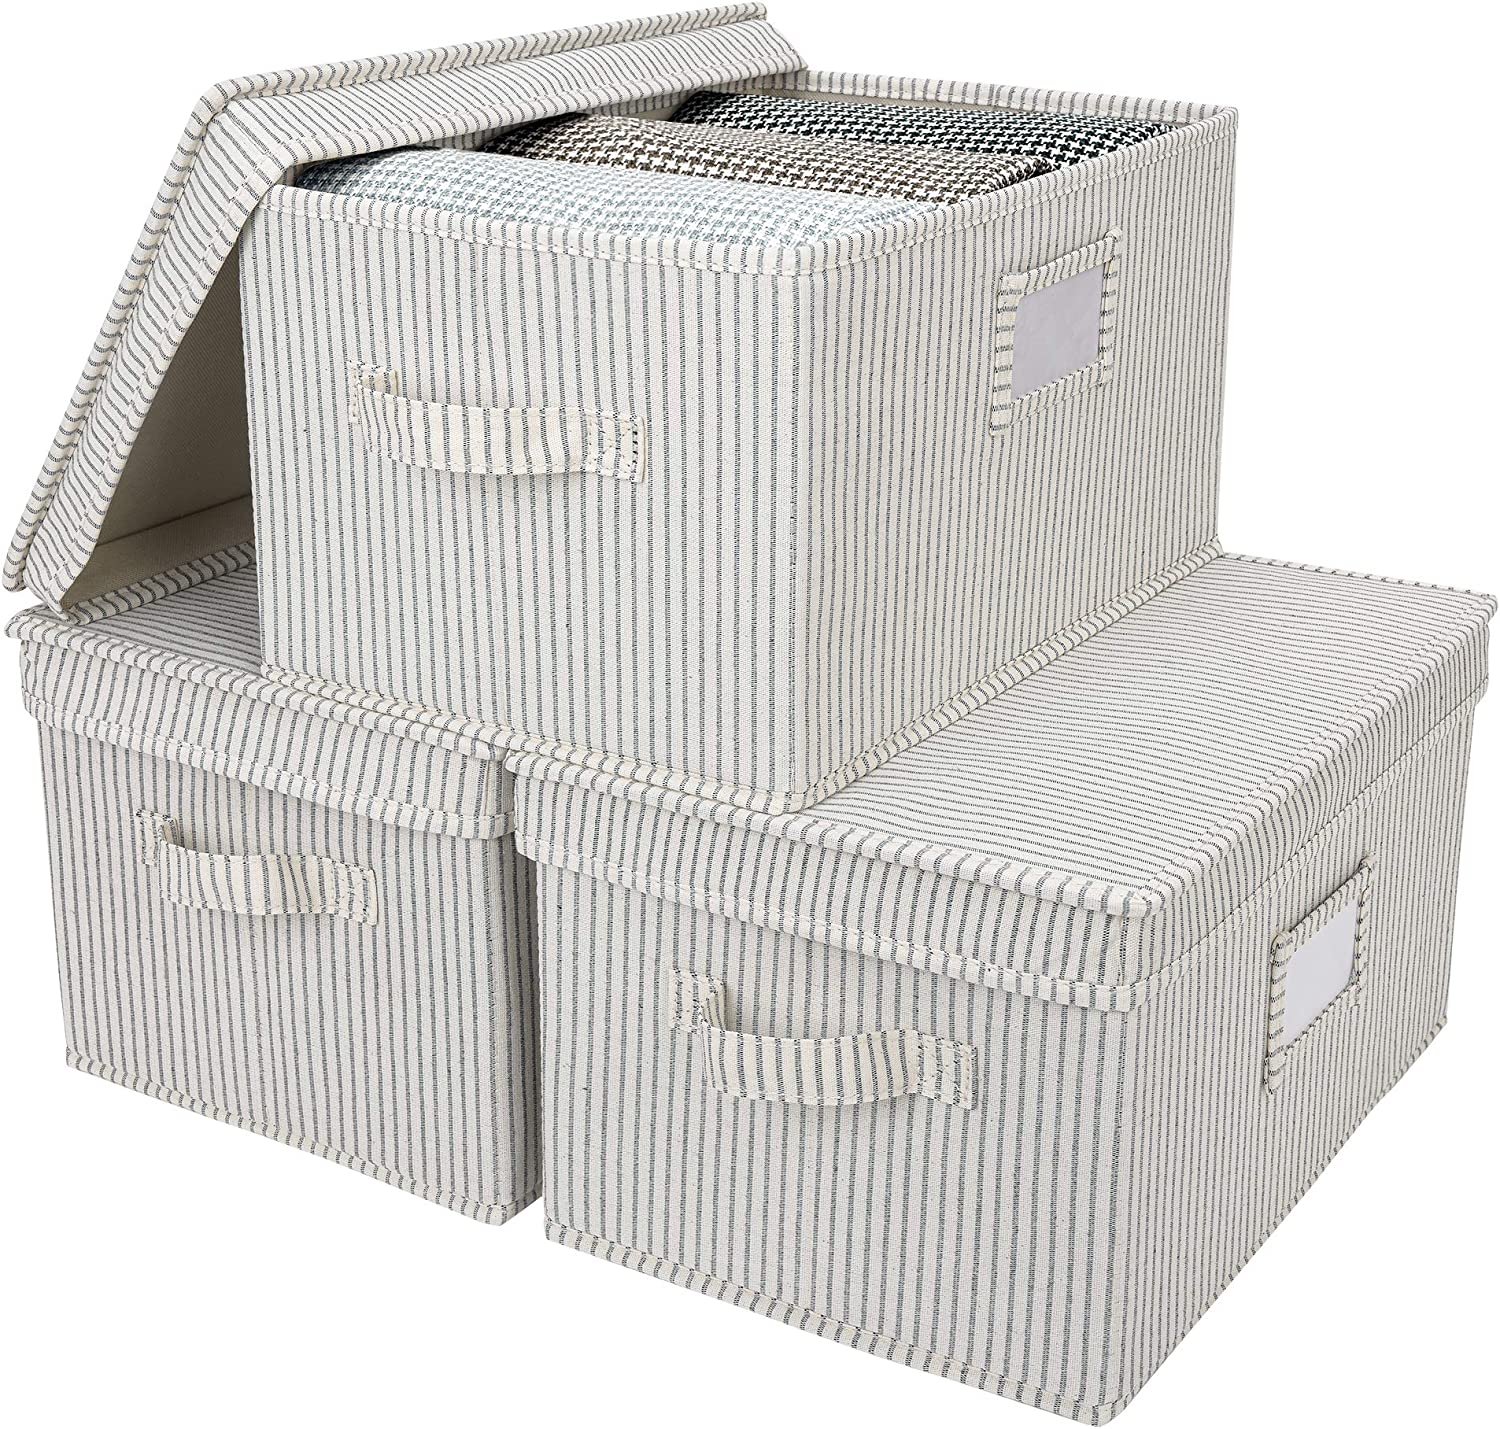 StorageWorks Storage Bargain sale Sale special price Bins with and Lids Canvas Handles